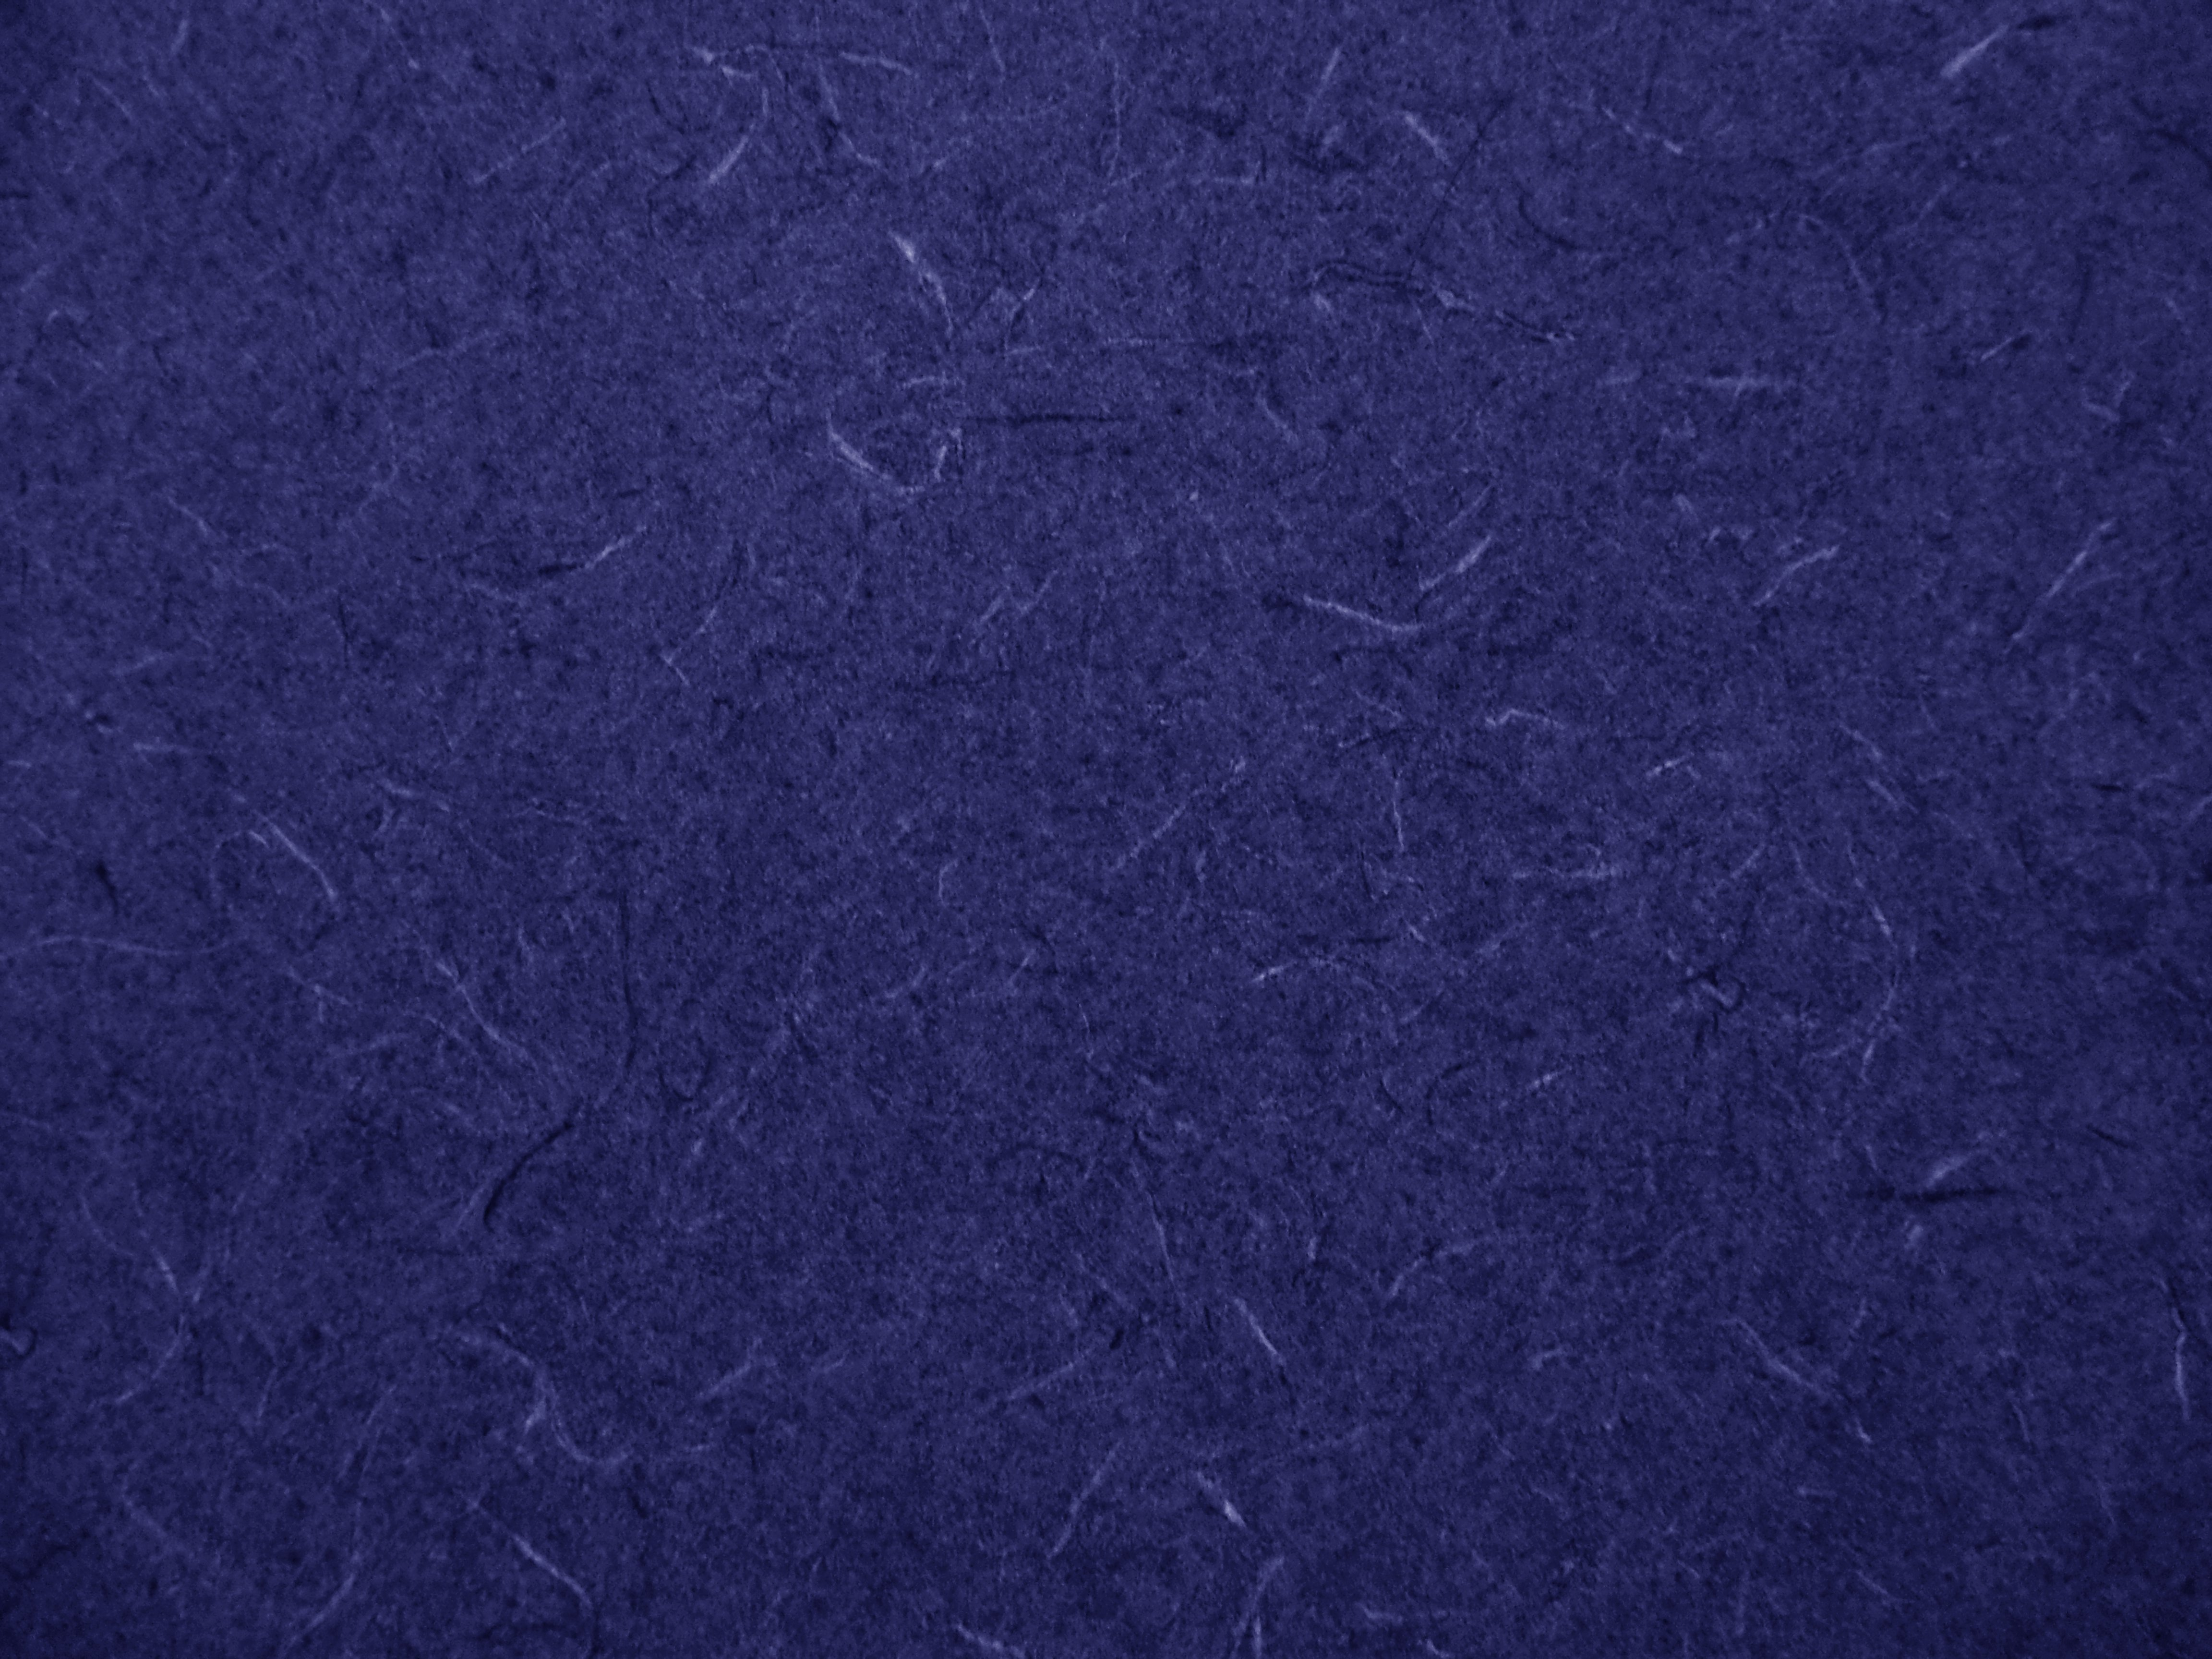 Navy Blue Abstract Pattern Laminate Countertop Texture Picture 4608x3456